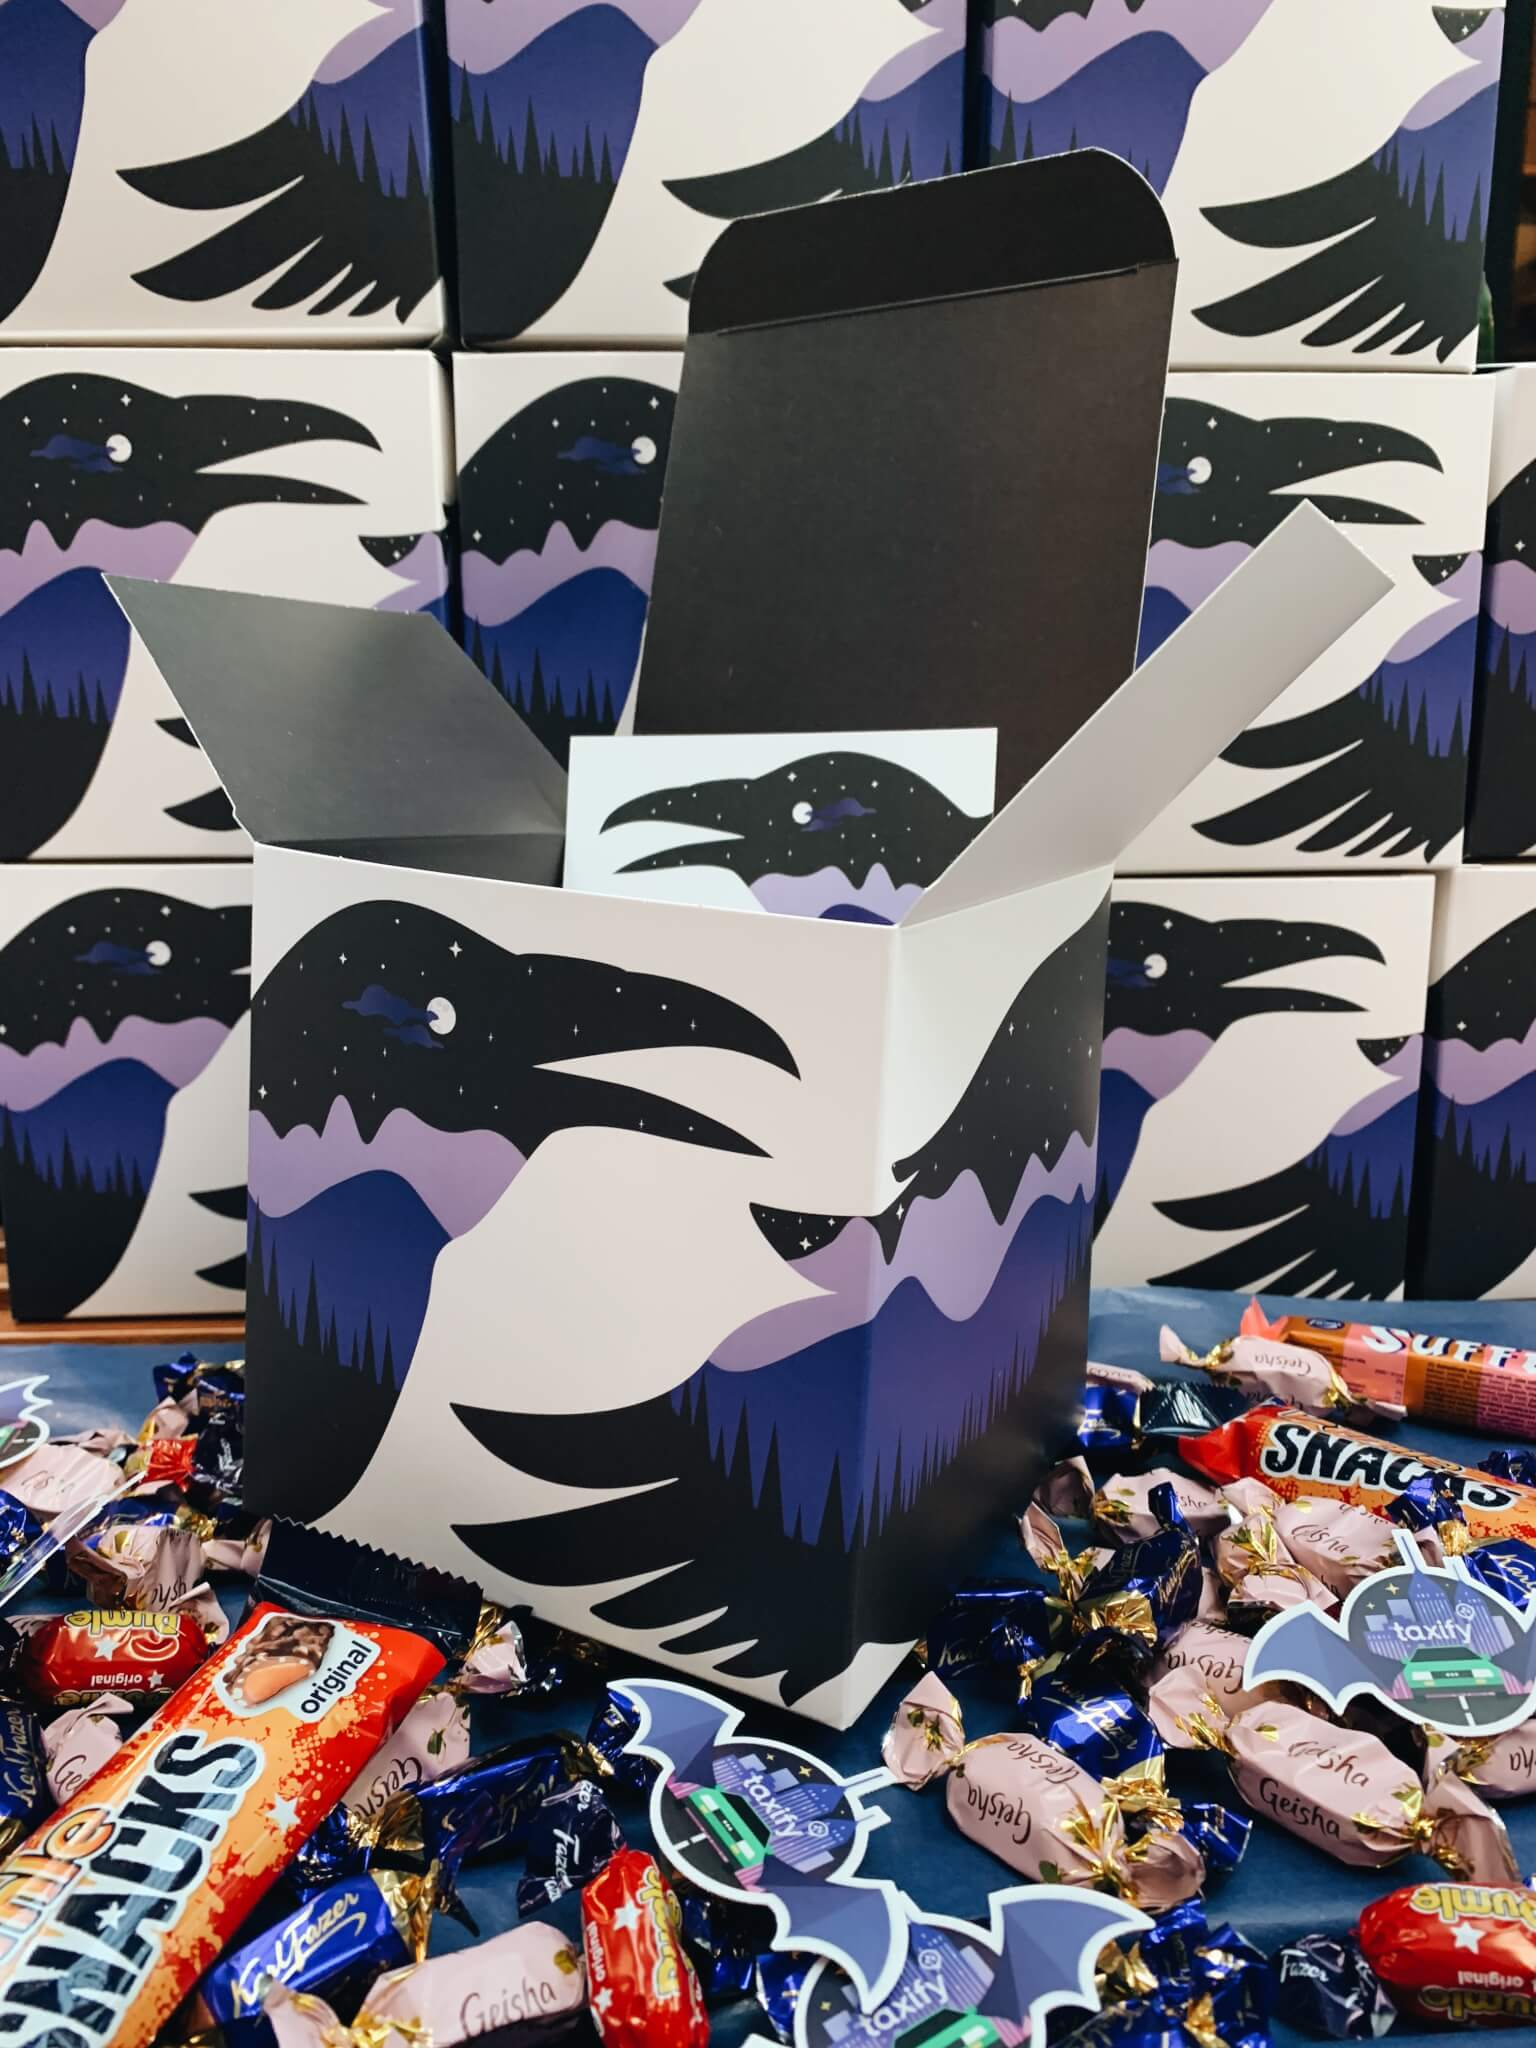 Hallowwen marketing event with packaging by Taxify